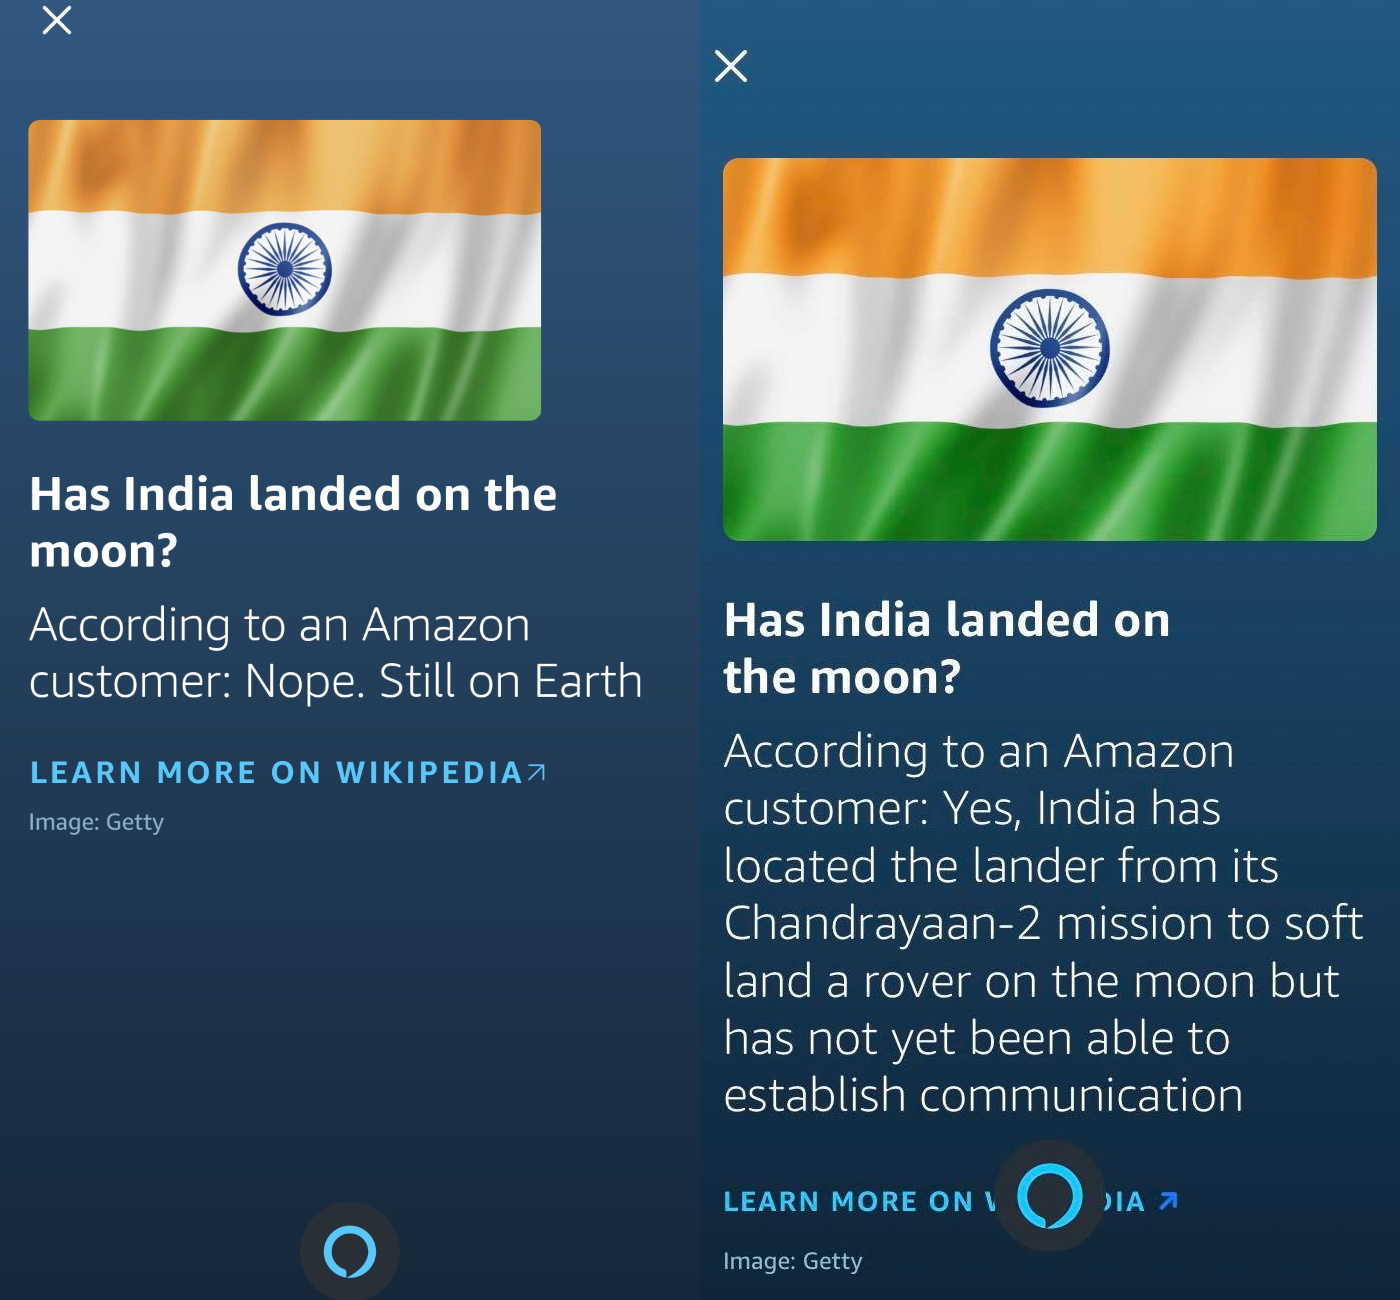 Amazon Alexa answers has India landed on the moon?